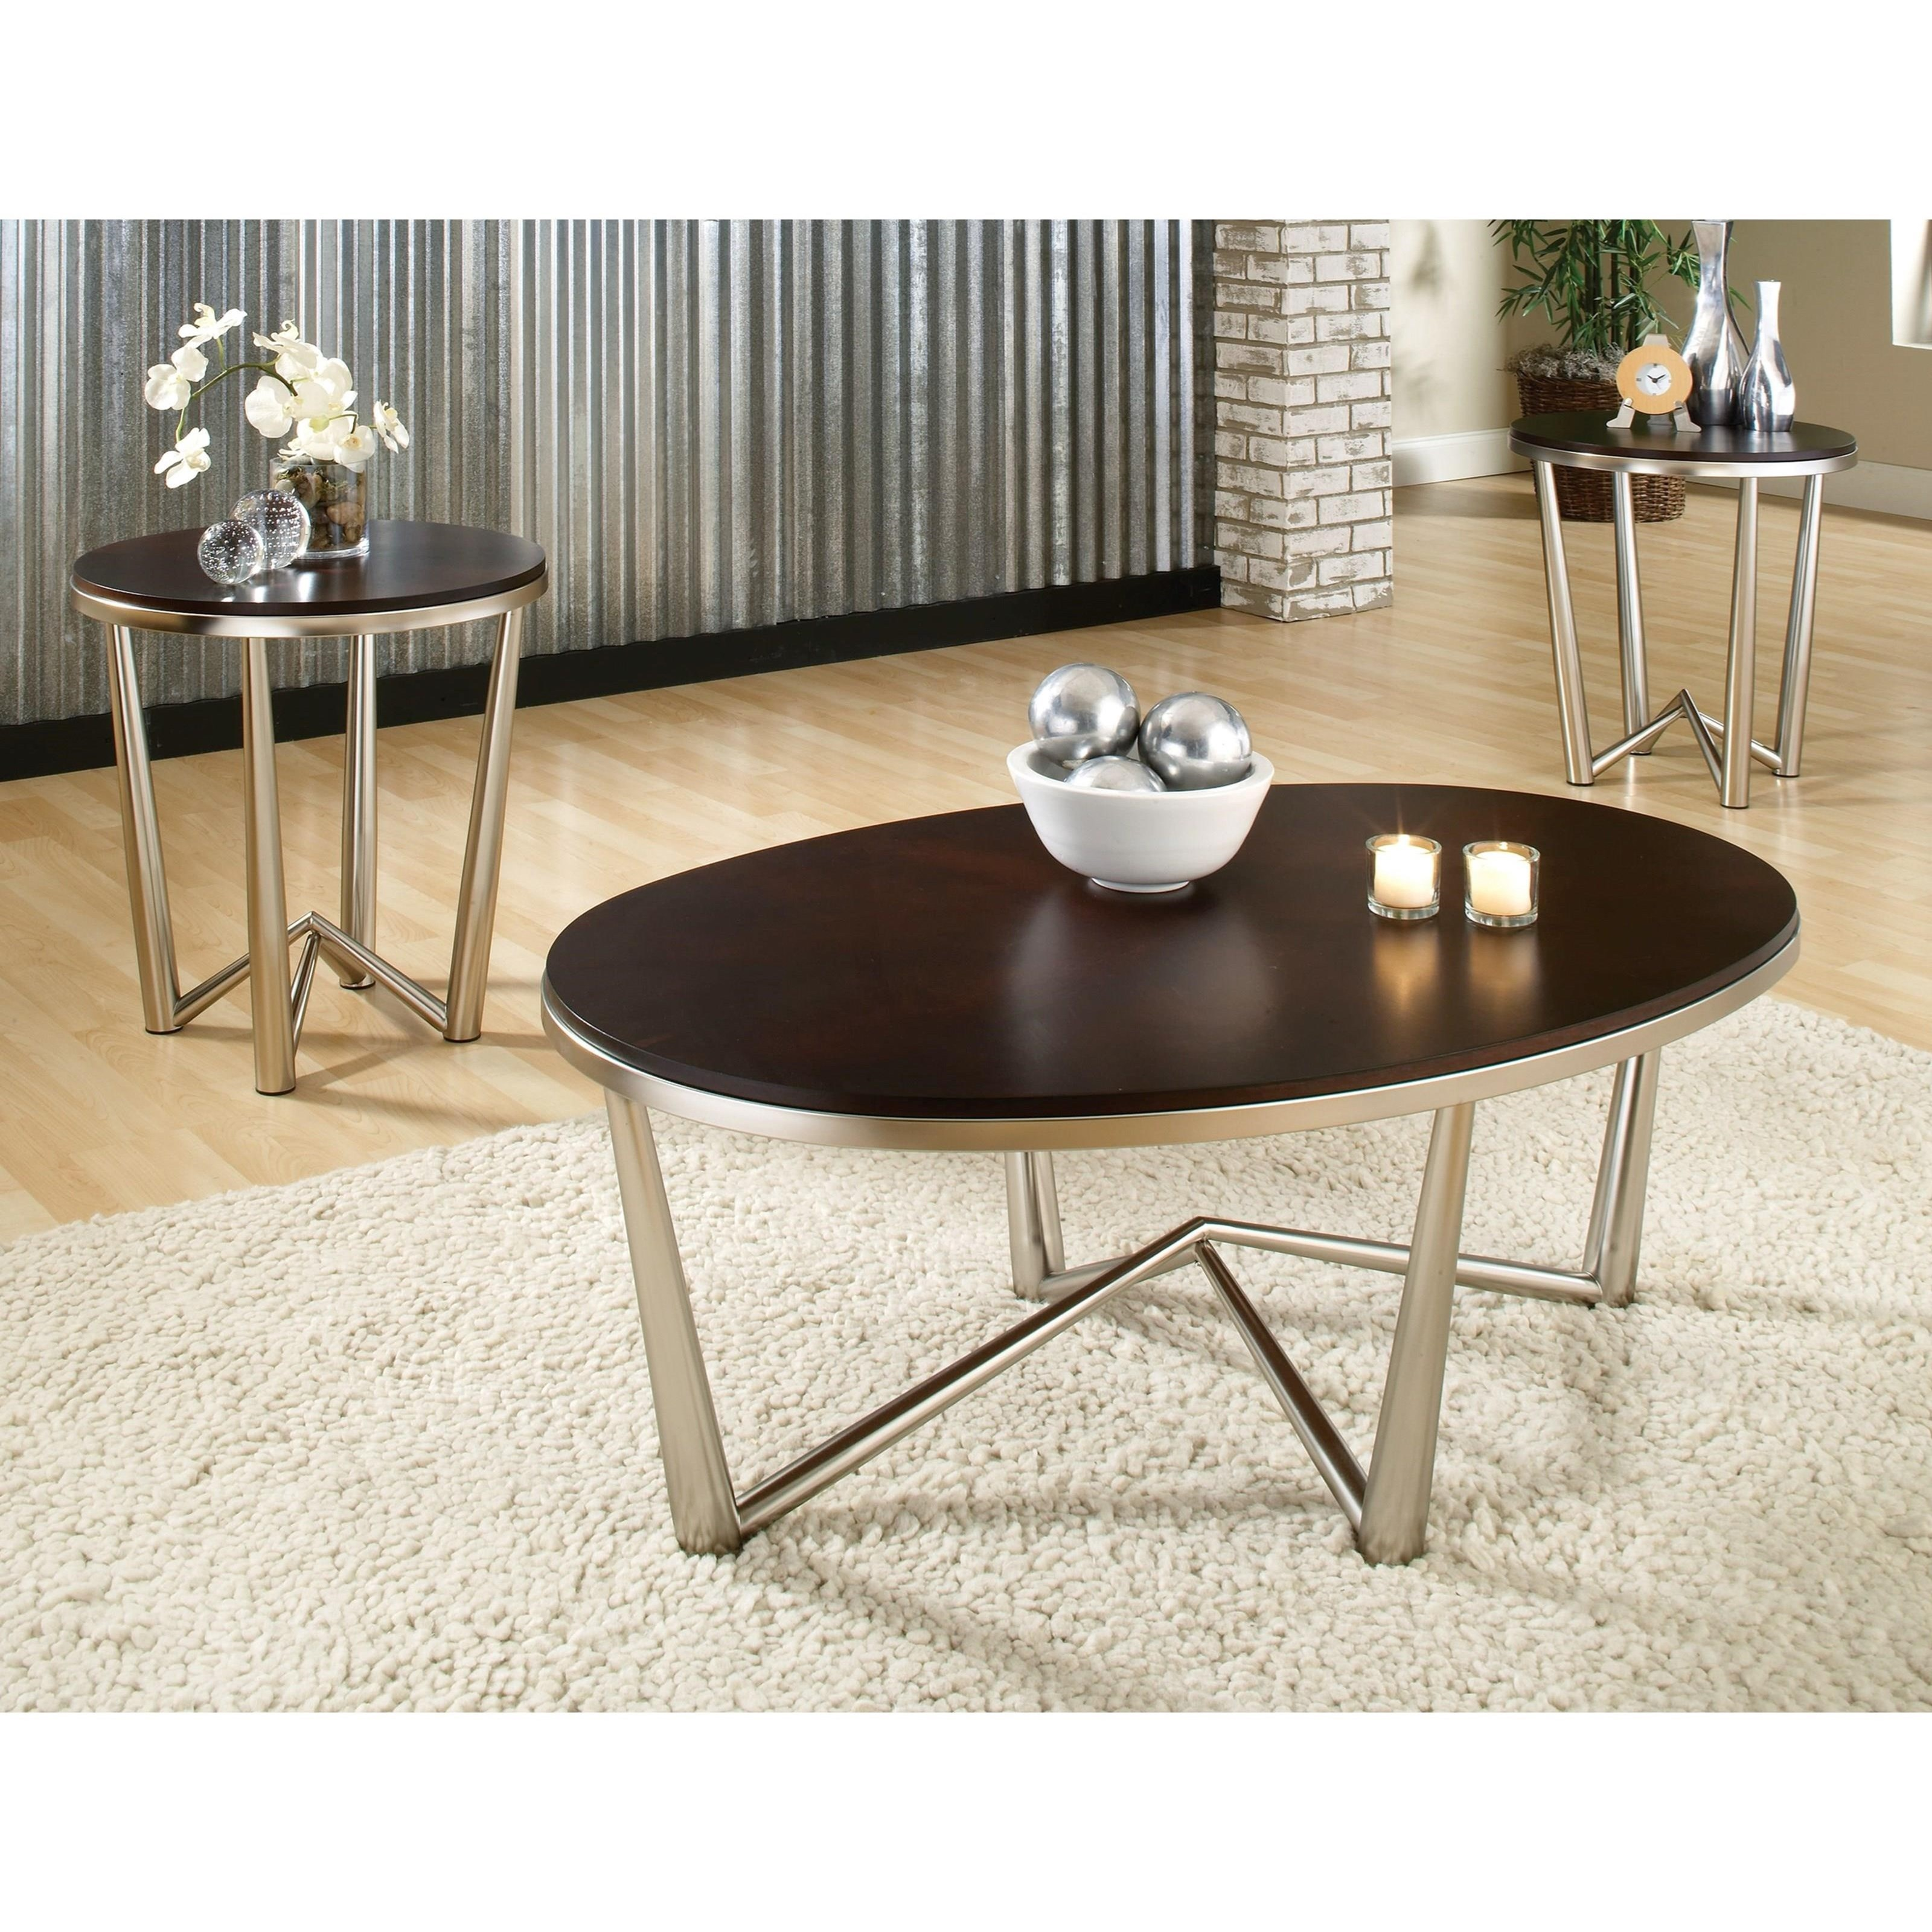 3-Pack of Occasional Tables